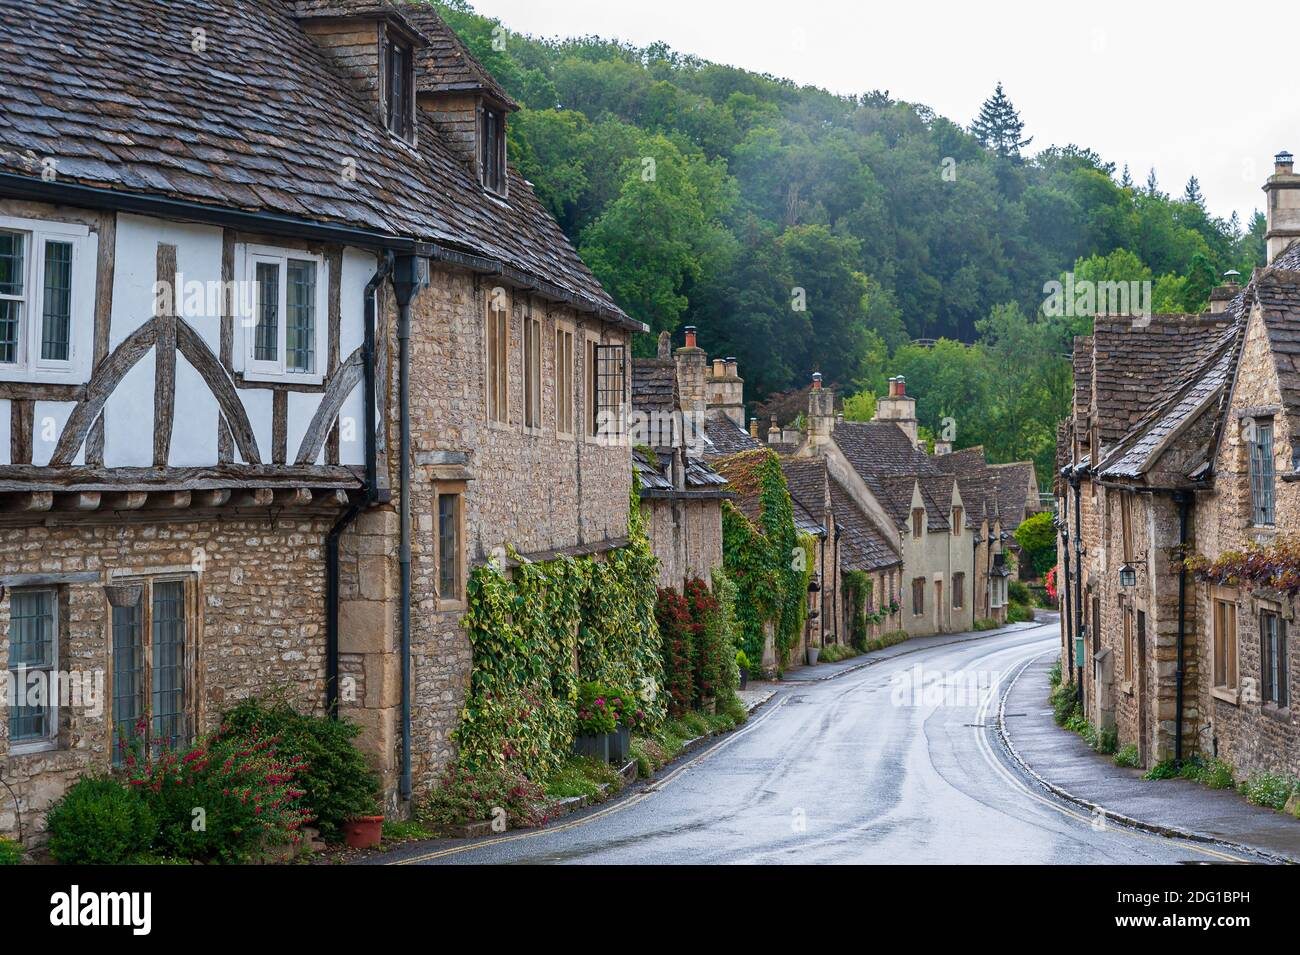 Step back in time and visit Castle Combe, quaint village with well preserved masonry houses dated centuries back in Wiltshire in England. Stock Photo